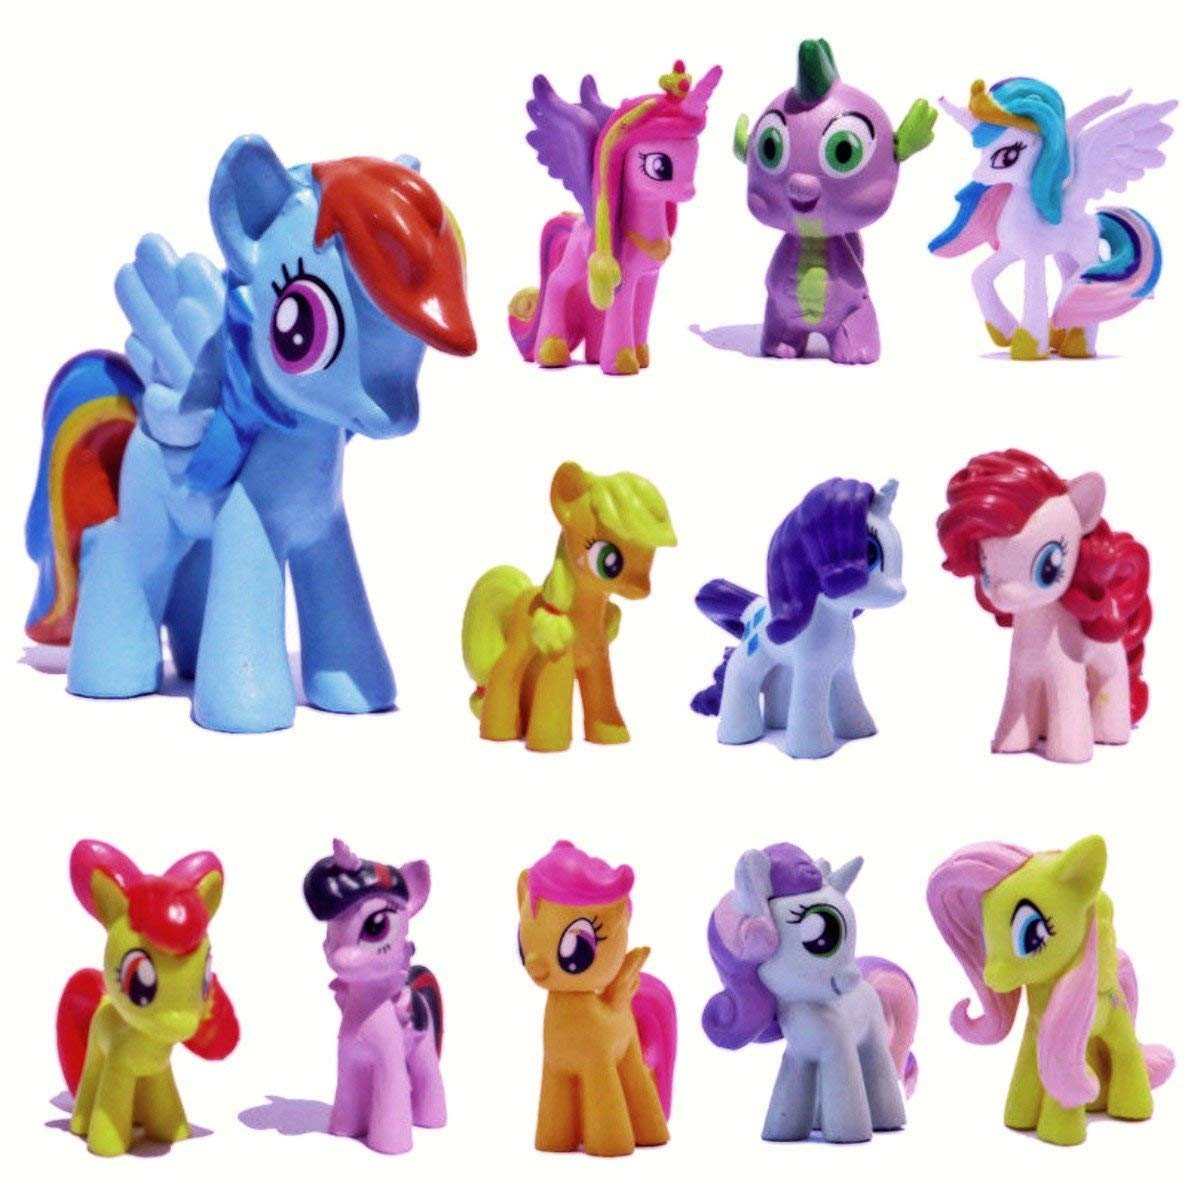 ATII 12 pcs The Little Pony Horse Toys   PVC Mini Figure Collection Playset   1.5-2' Tall Horse Figure Toys for Kids Cupcake Cake Toppers by ATII